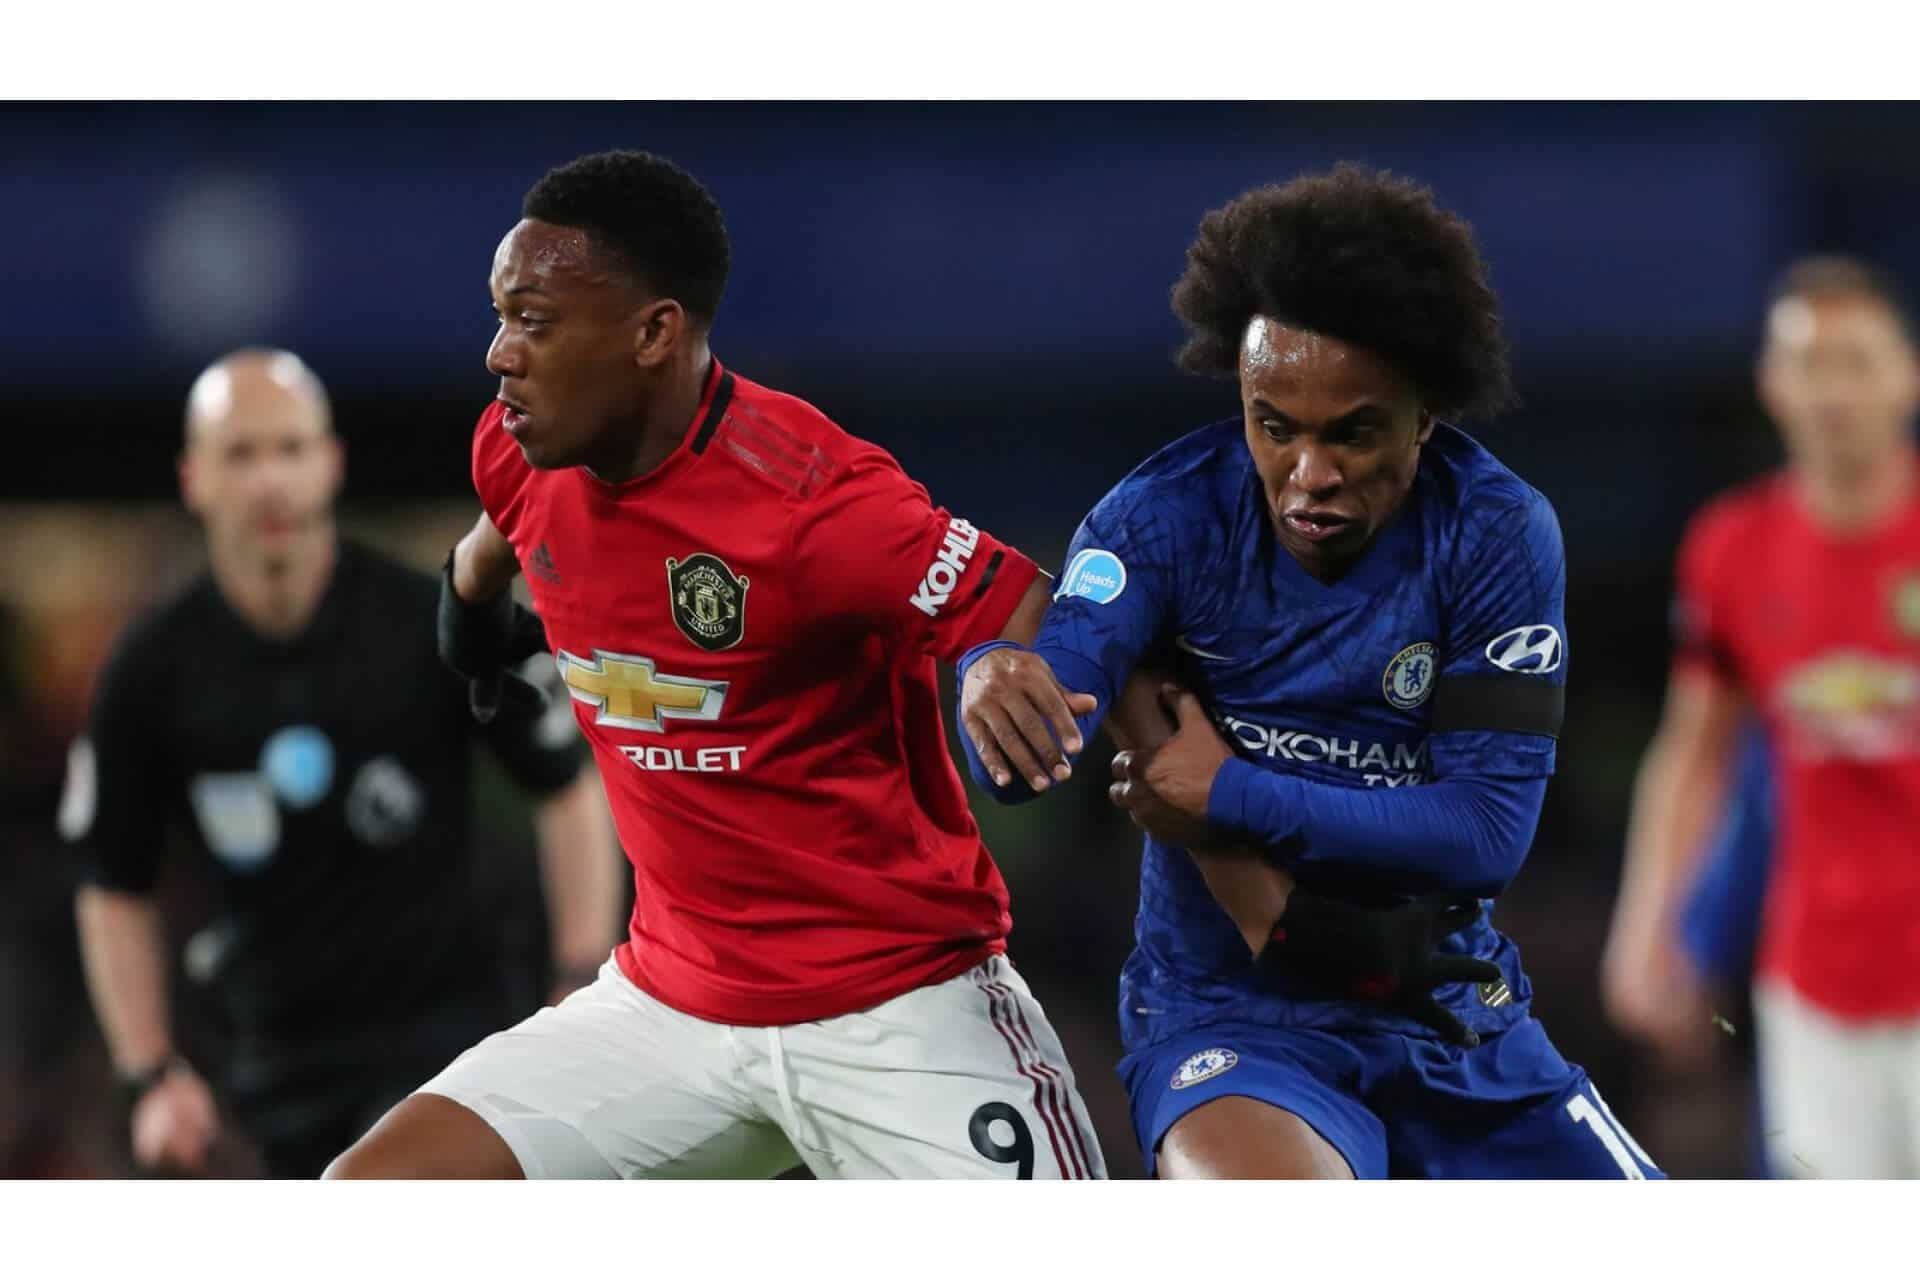 Manchester United Face Chelsea In Sunday S Fa Cup Semi Final Team News Analysis And Prediction In 2020 Semi Final Fa Cup Manchester United